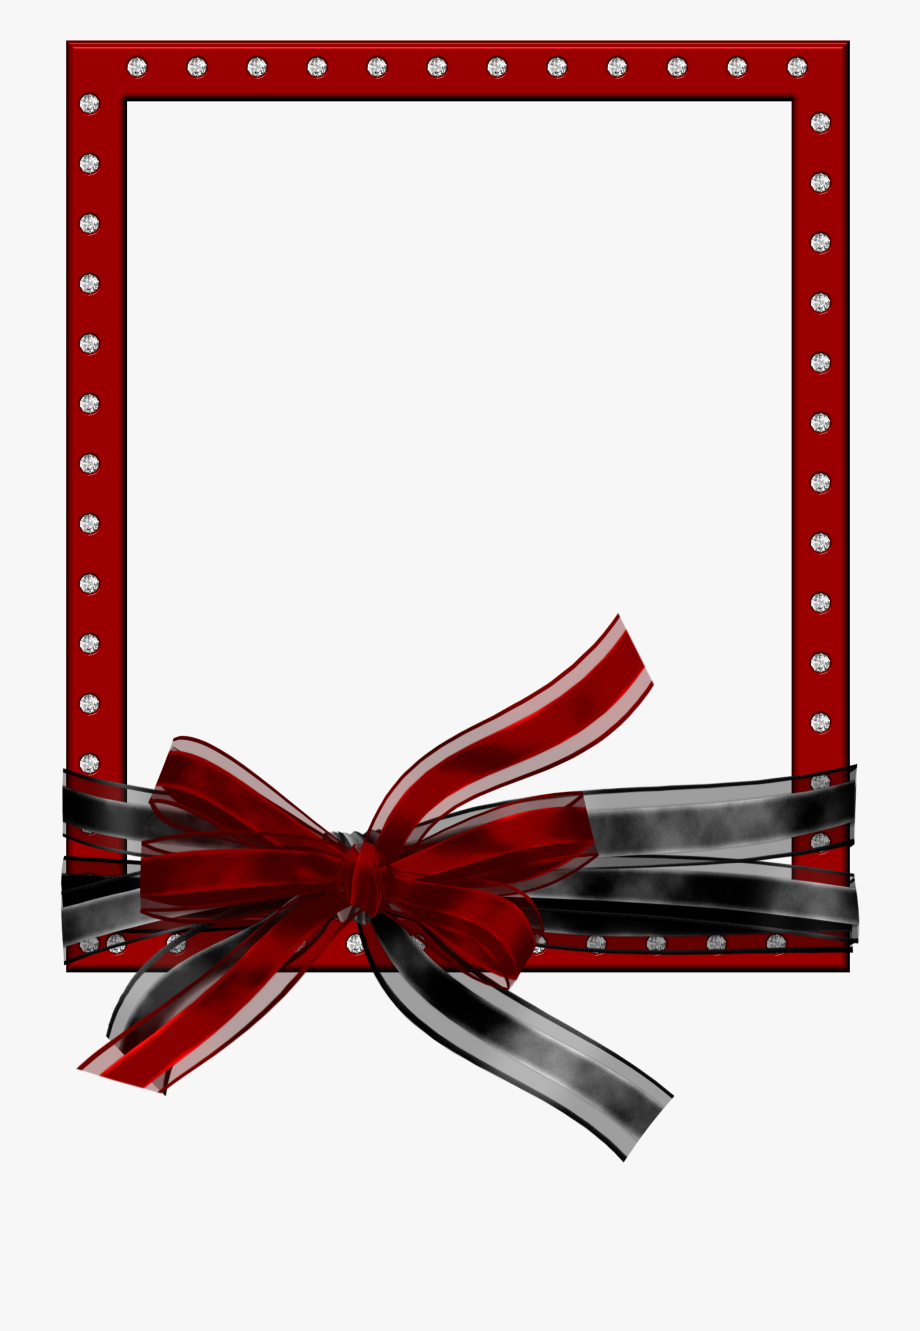 Red black frame clipart png library Red Png Photo Frame With Black And Red Bow - Black And Red ... png library